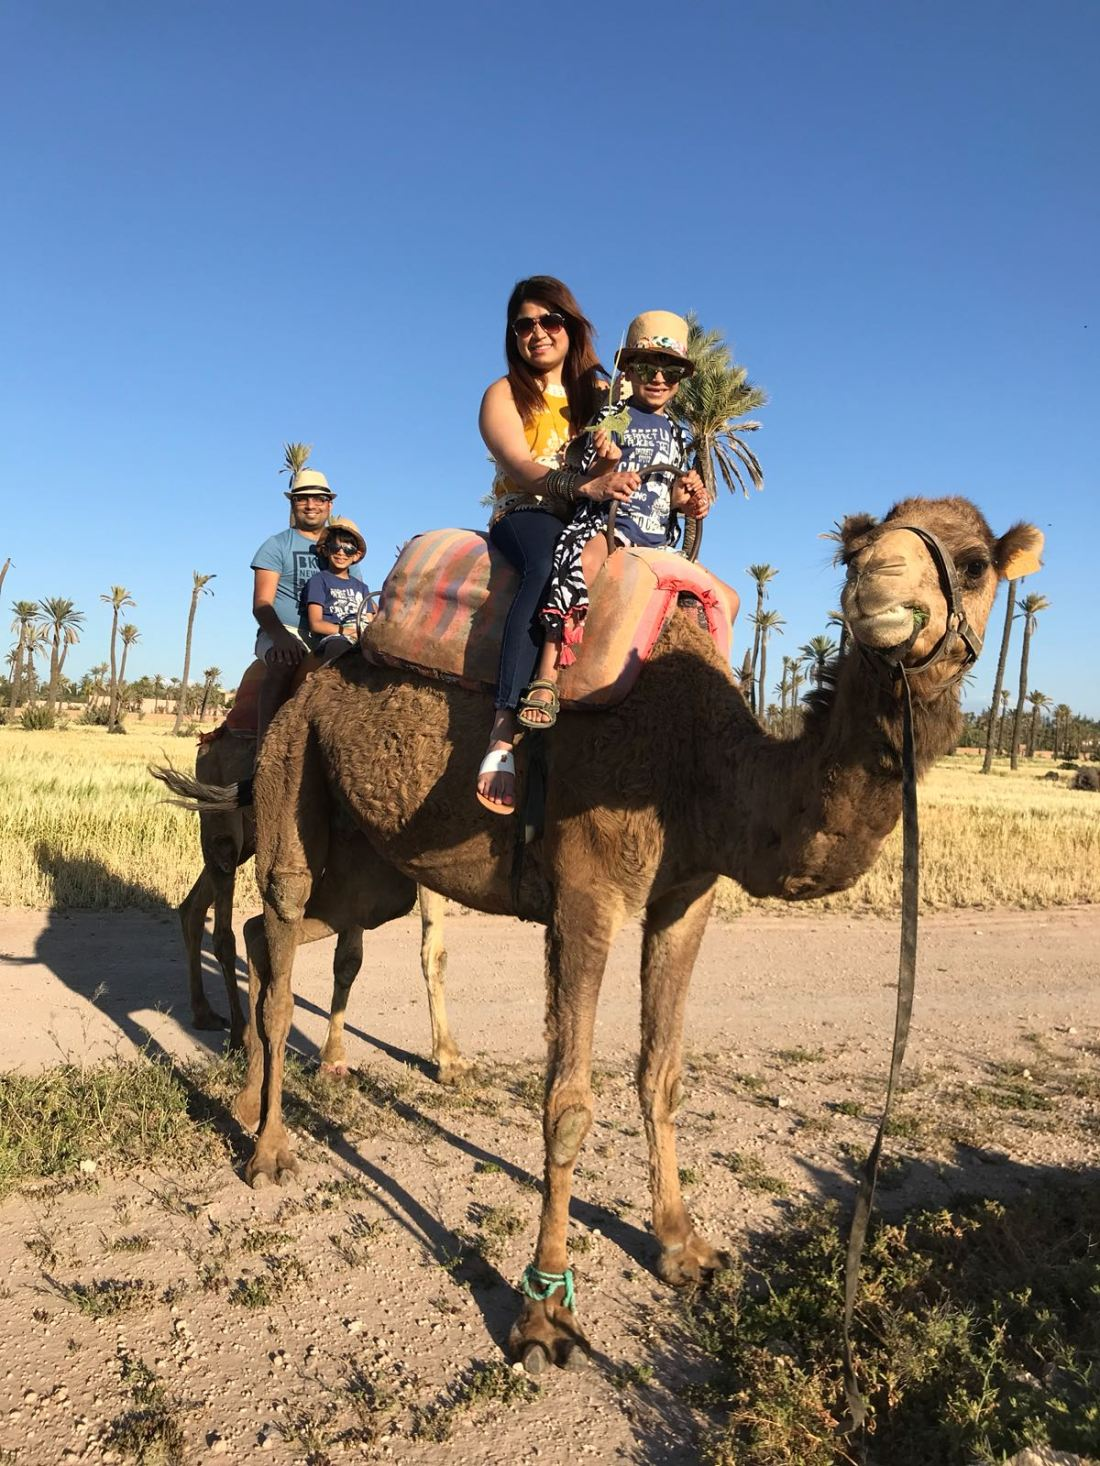 Camel ride, marrakesh, palmeira